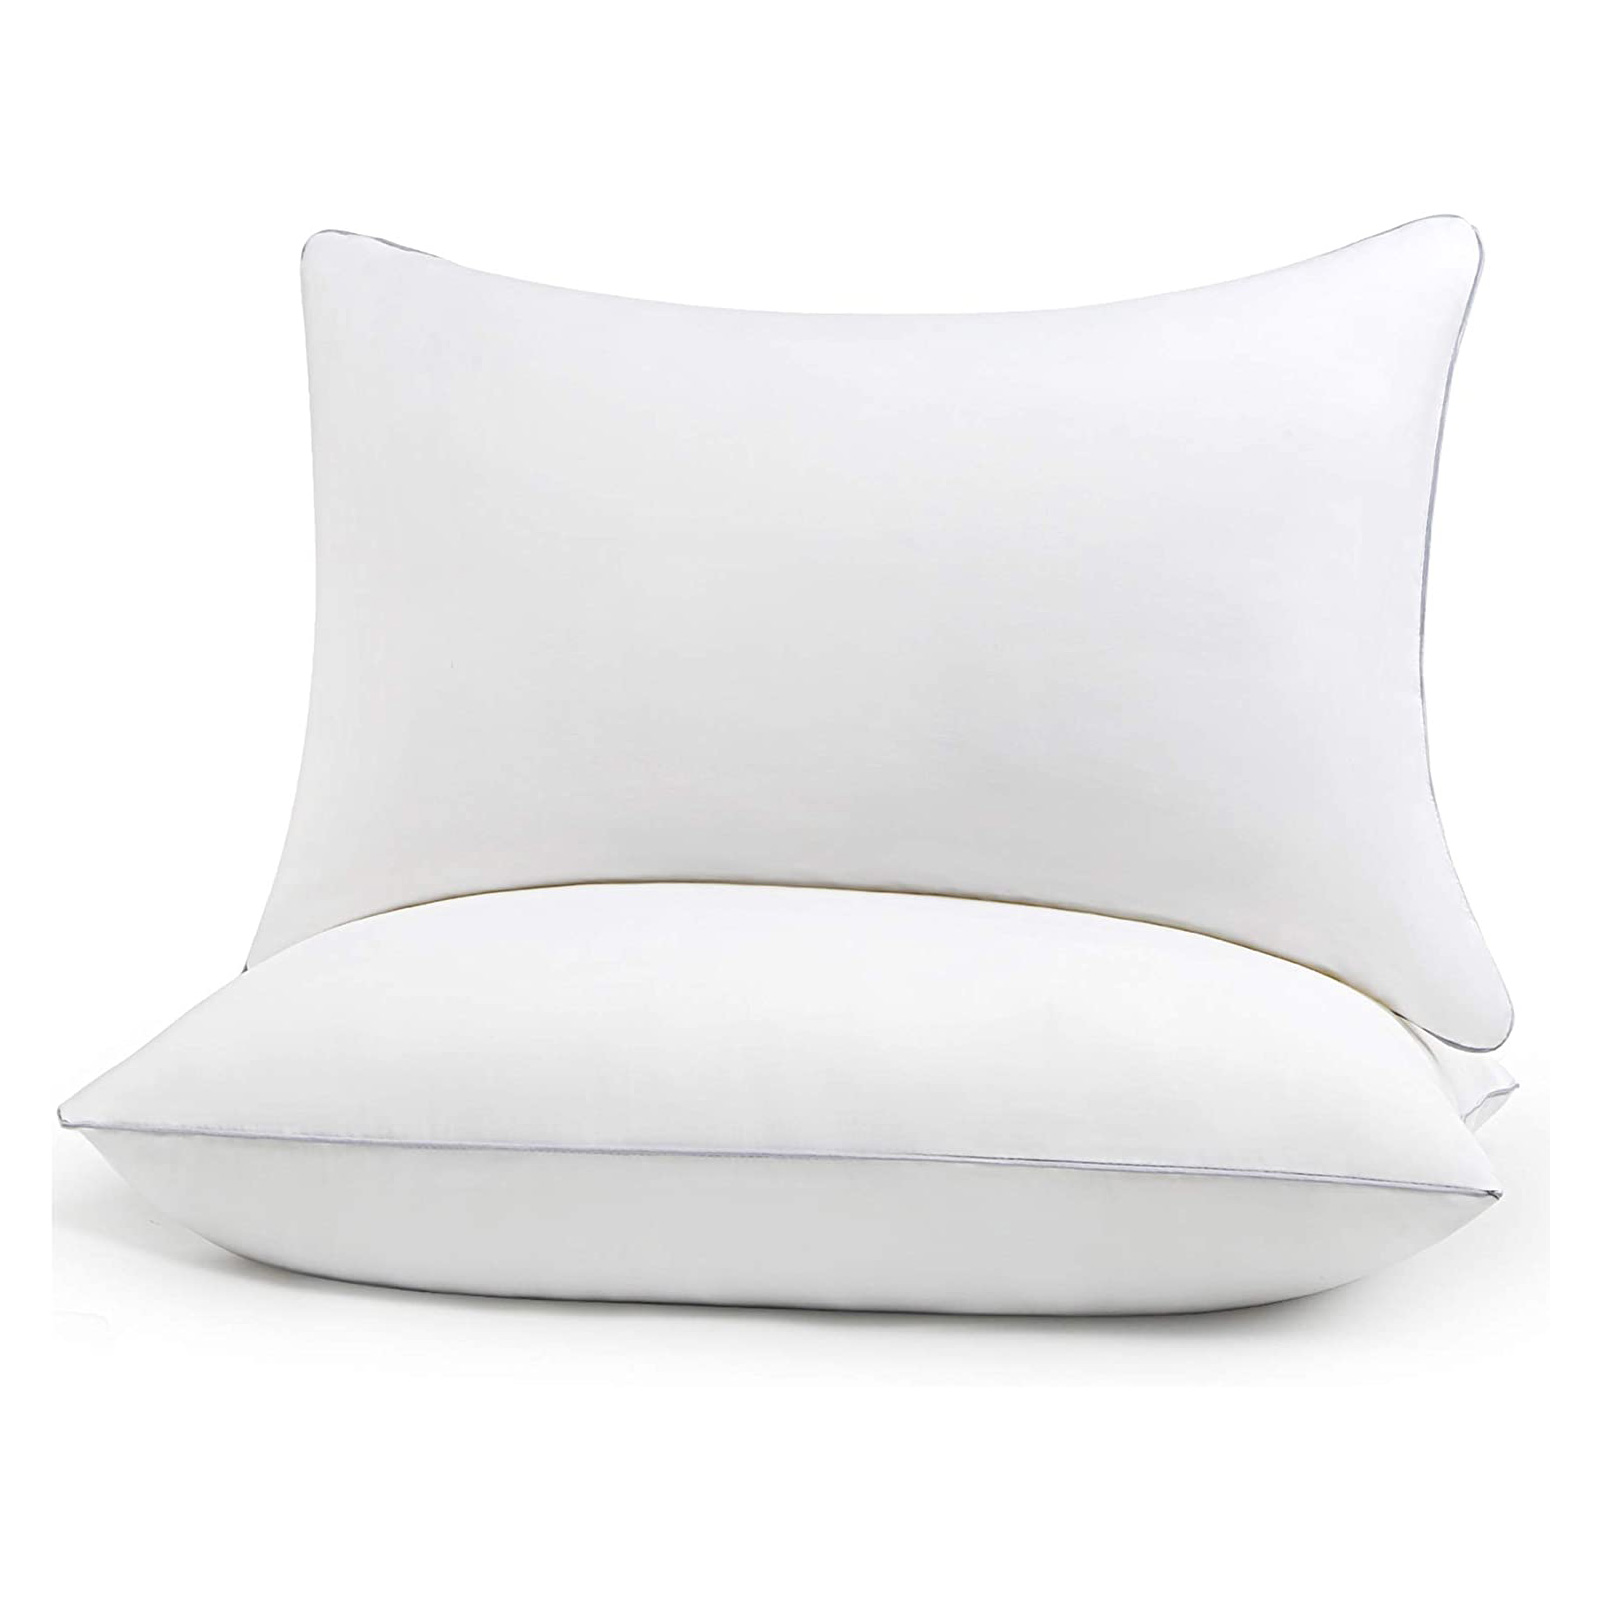 HIMOON Queen Size Cooling Pillows Set of 2